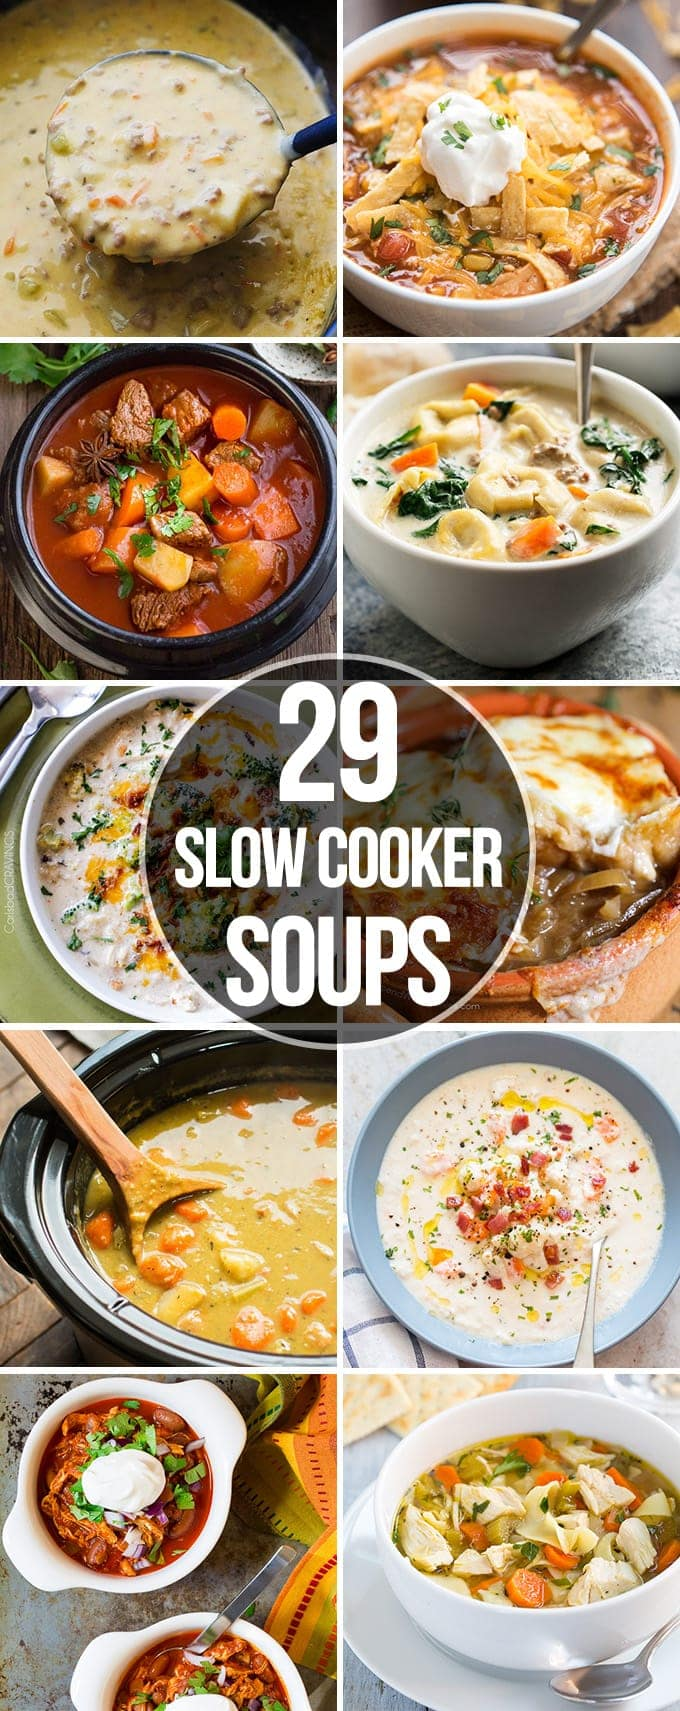 Twenty NineSlow Cooker Soups that are perfect for an easy comforting meal. They are ready with out a lot of prep work and are so great for a cold day!